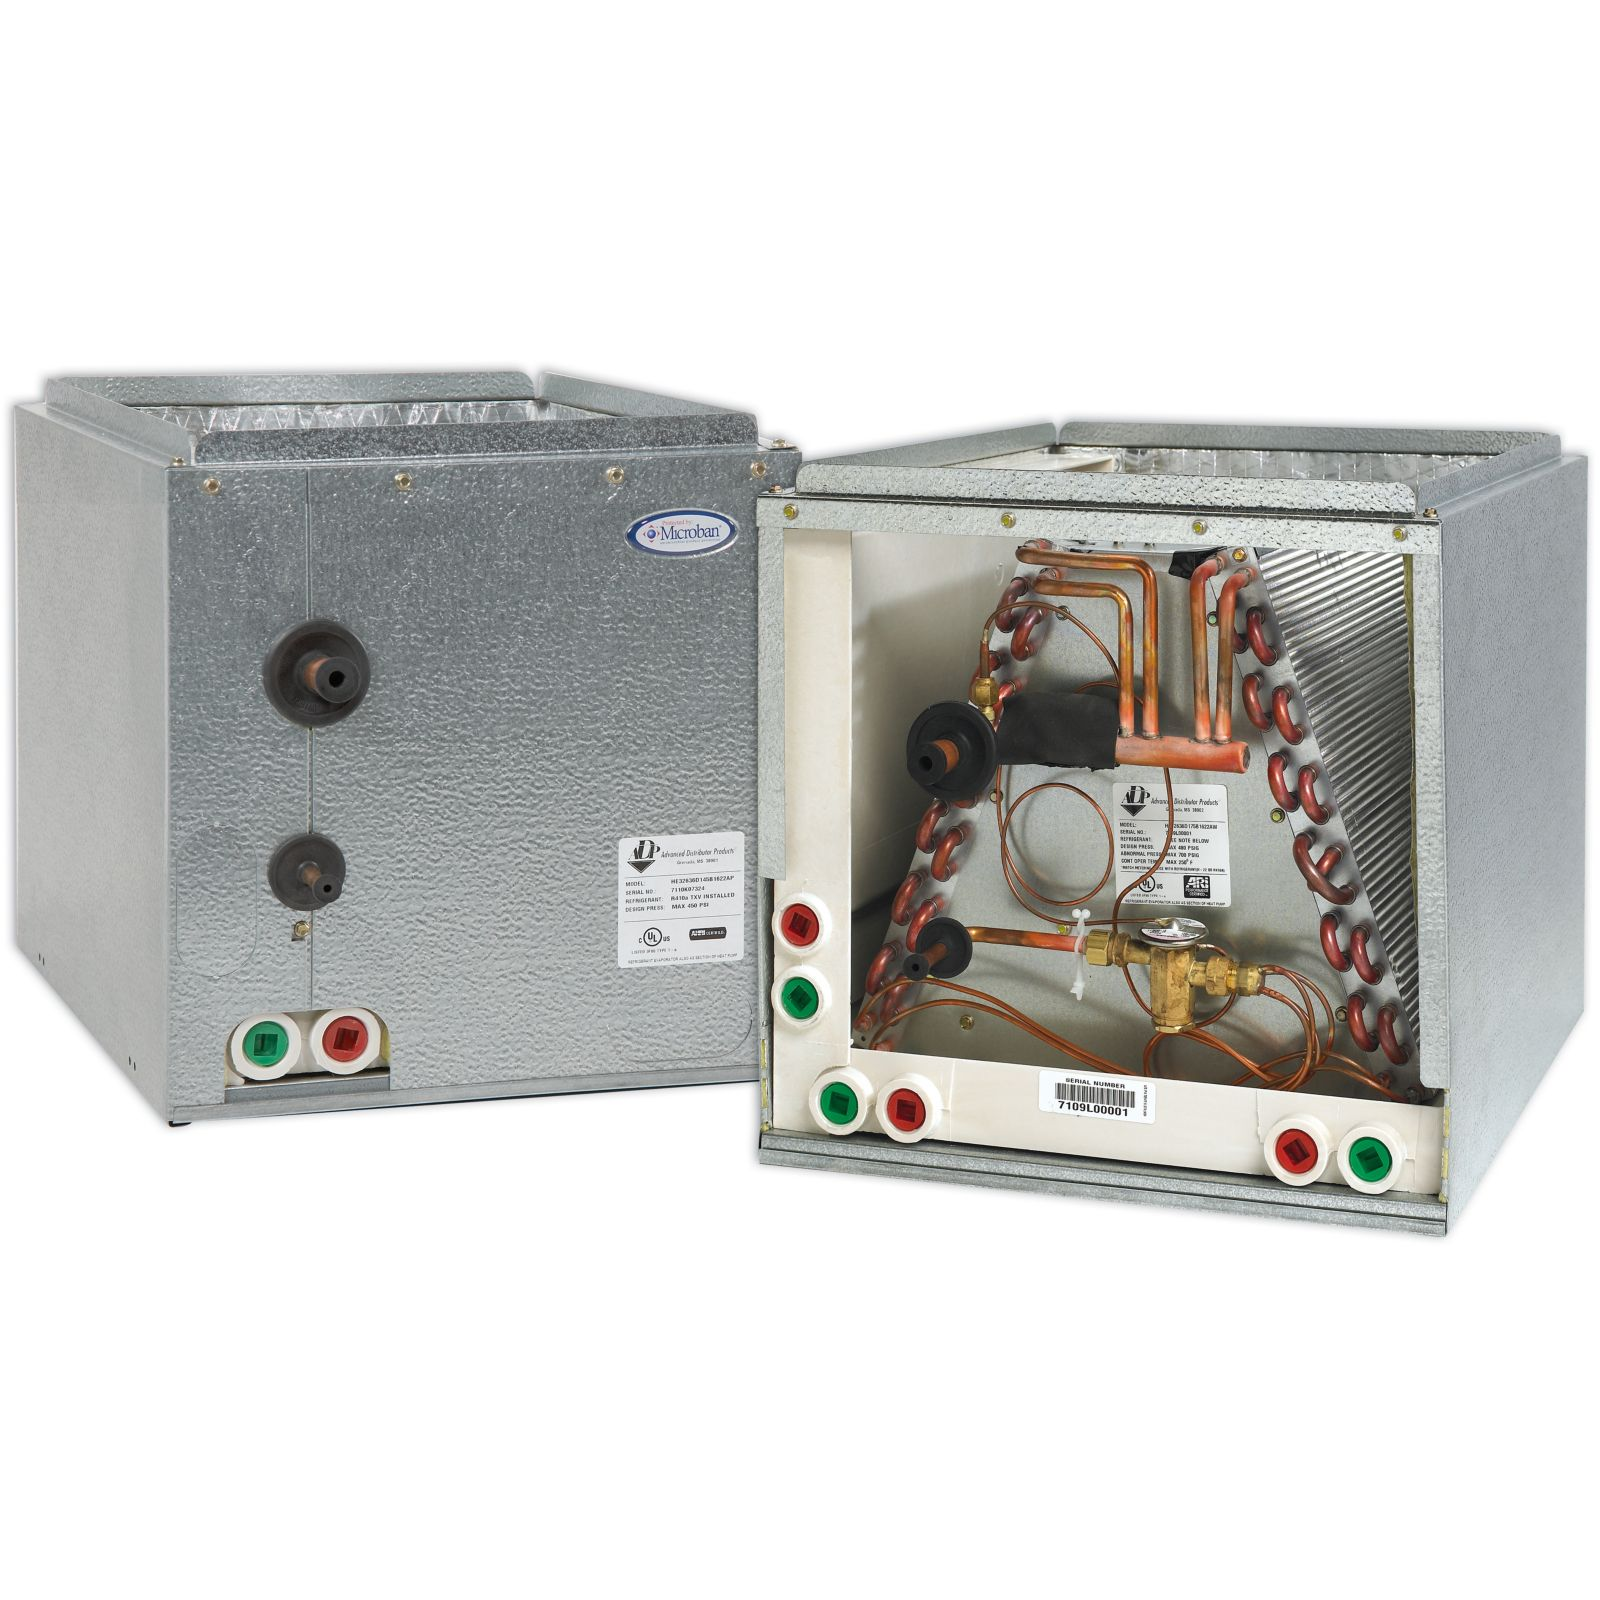 "ADP RE47636C175B2922AP - HE Series Cased Evaporator Coil 3 Ton Copper Left Hand Multi-Position, R410A, 20.5""x 17.5""x 29.5"""